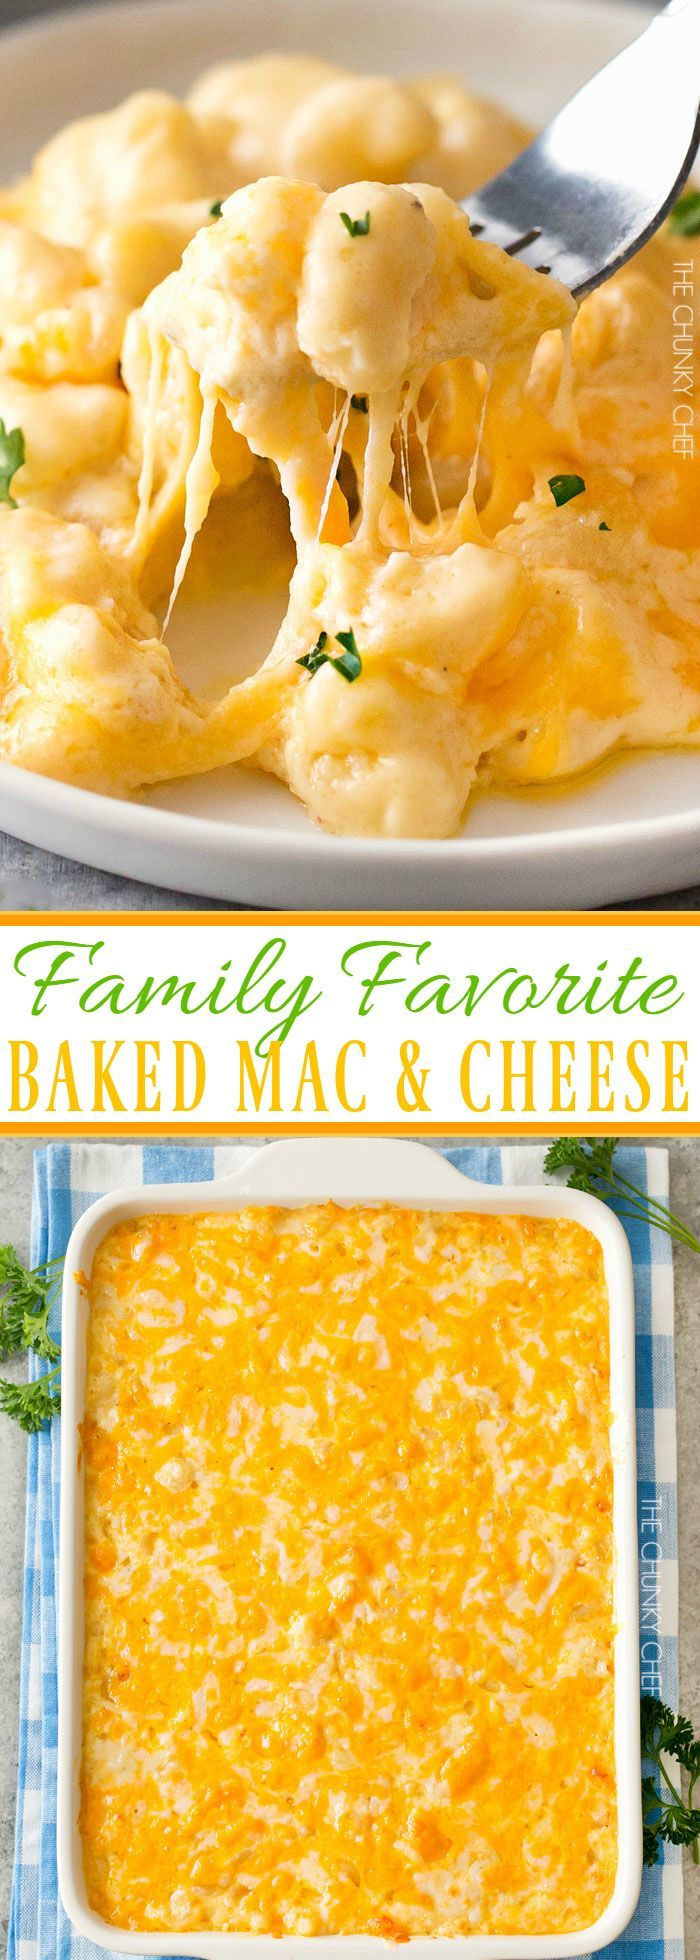 Family Favorite Baked Mac and Cheese | Rich and creamy baked mac and cheese, filled with multiple layers of shredded cheeses and